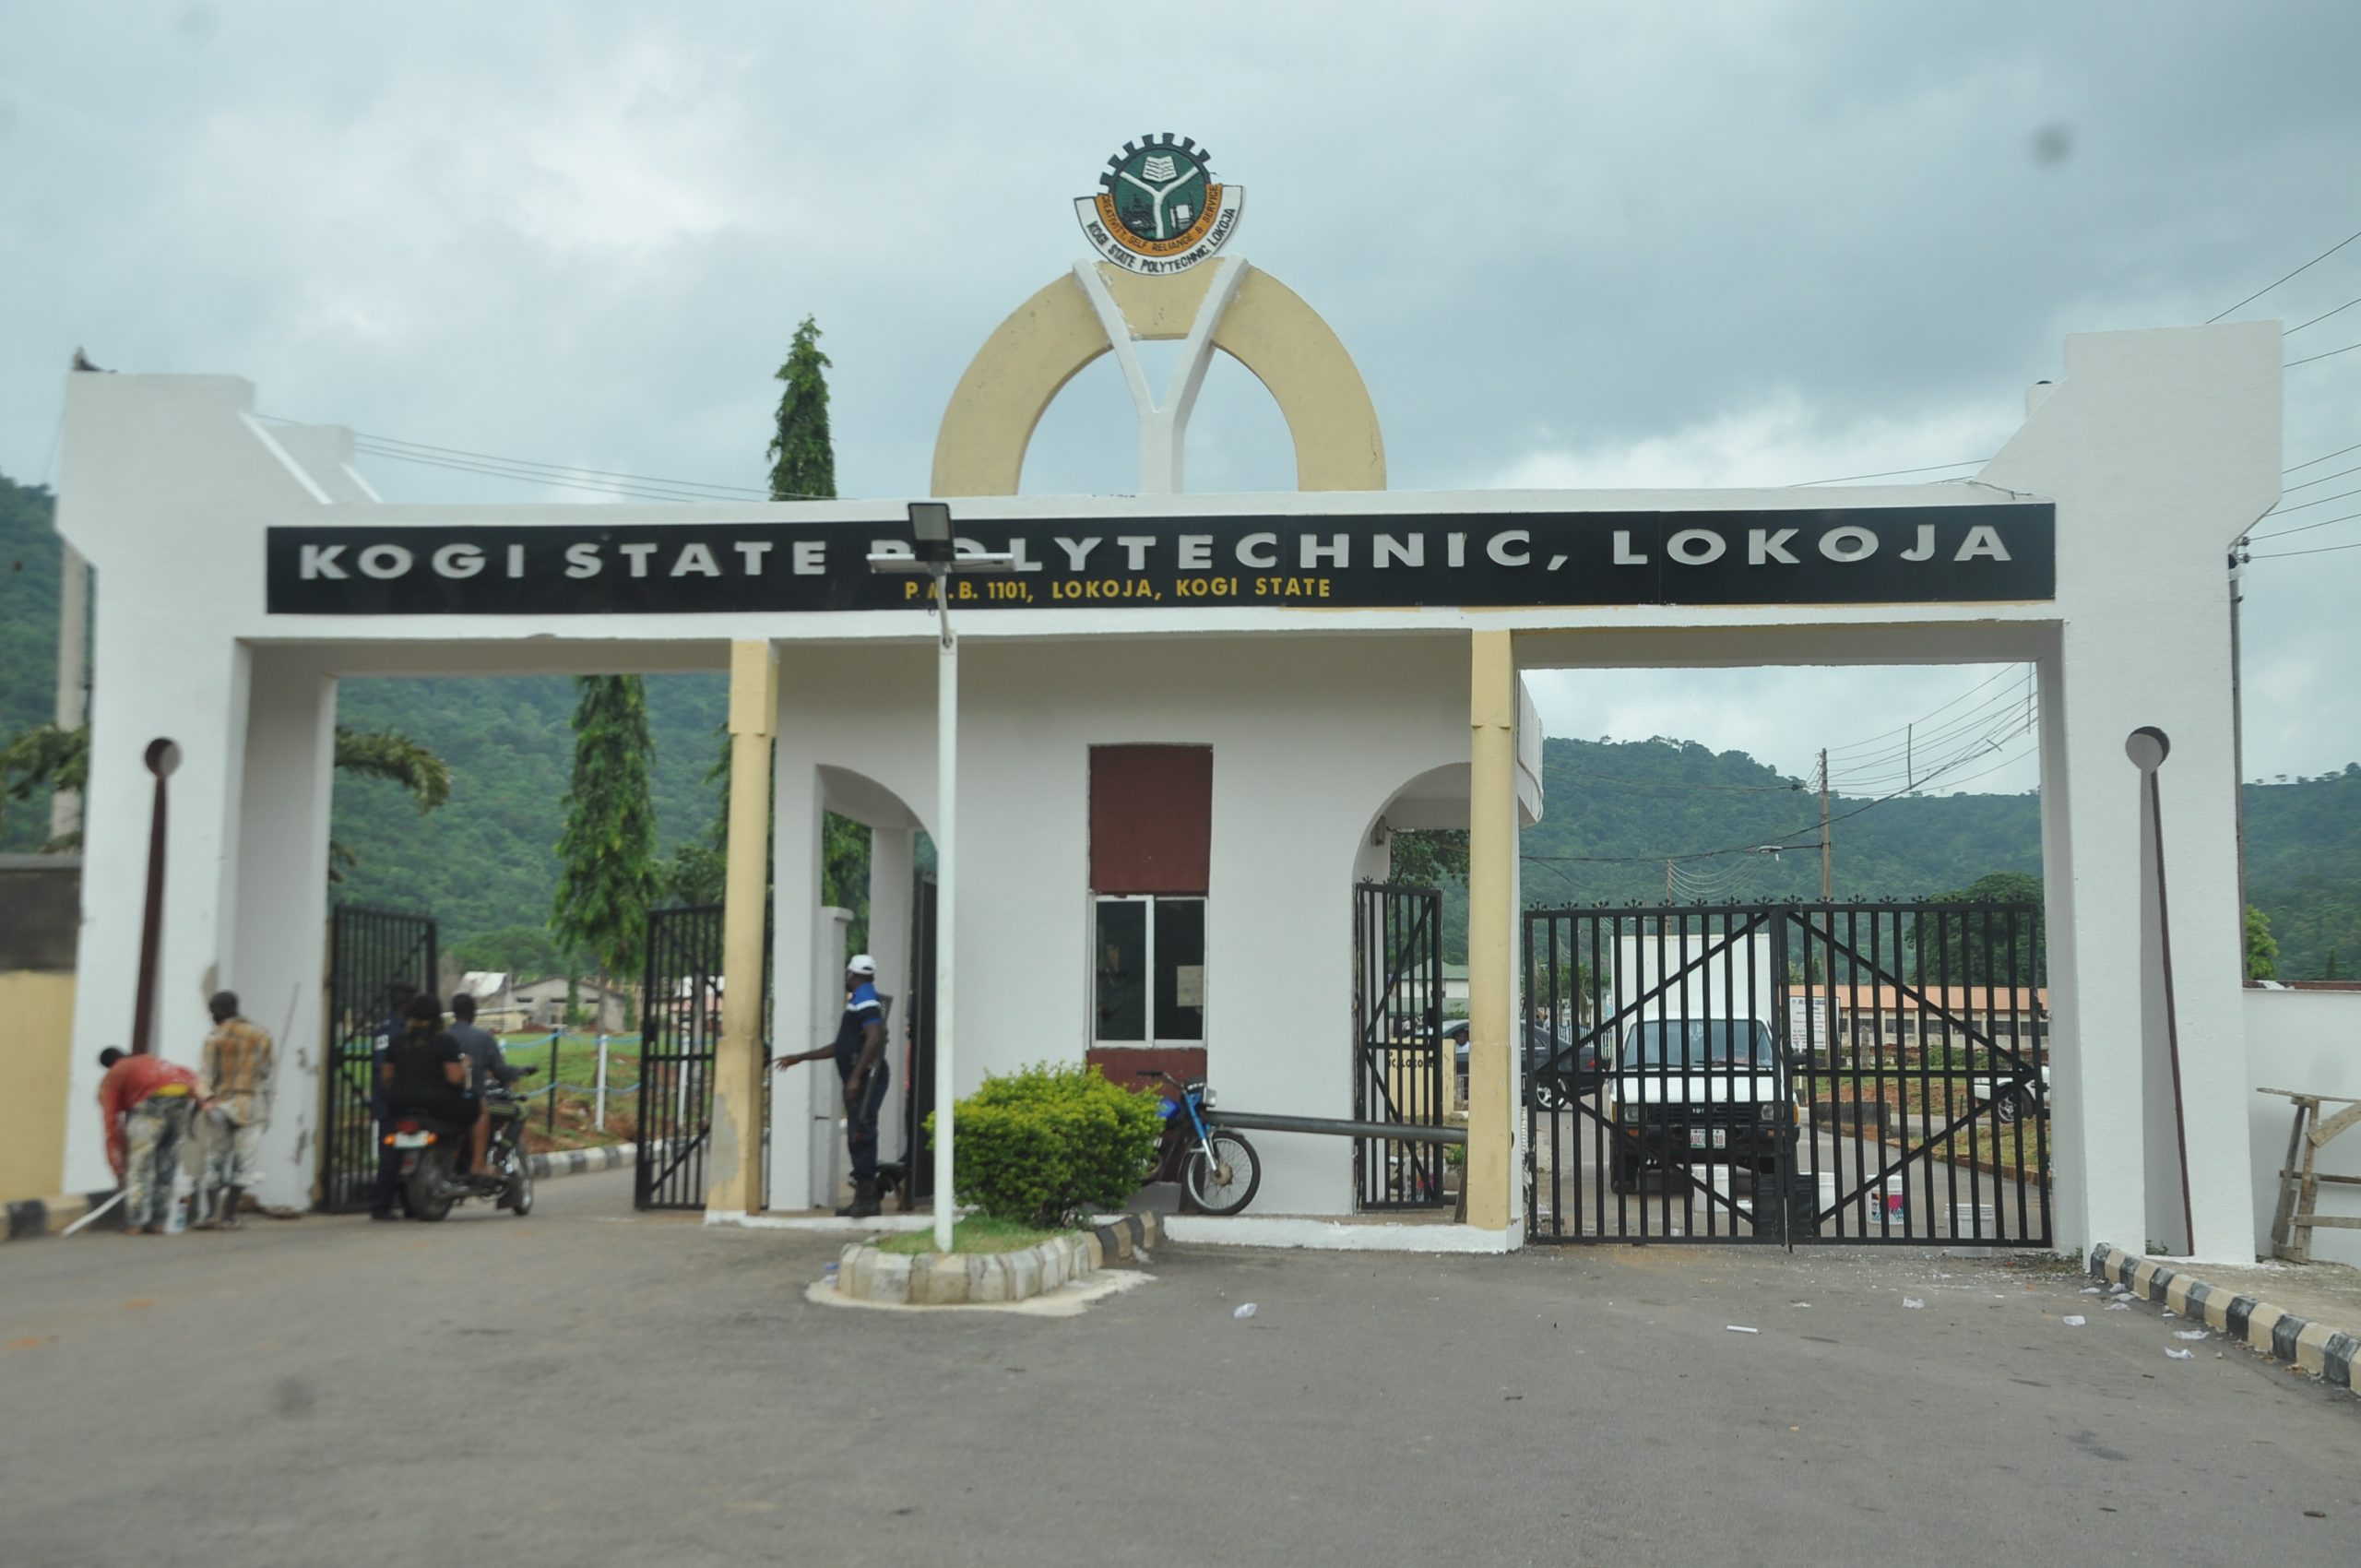 SM EDUCATION: Examination celebration on campus is banned in Kogi Poly  – Read Why?